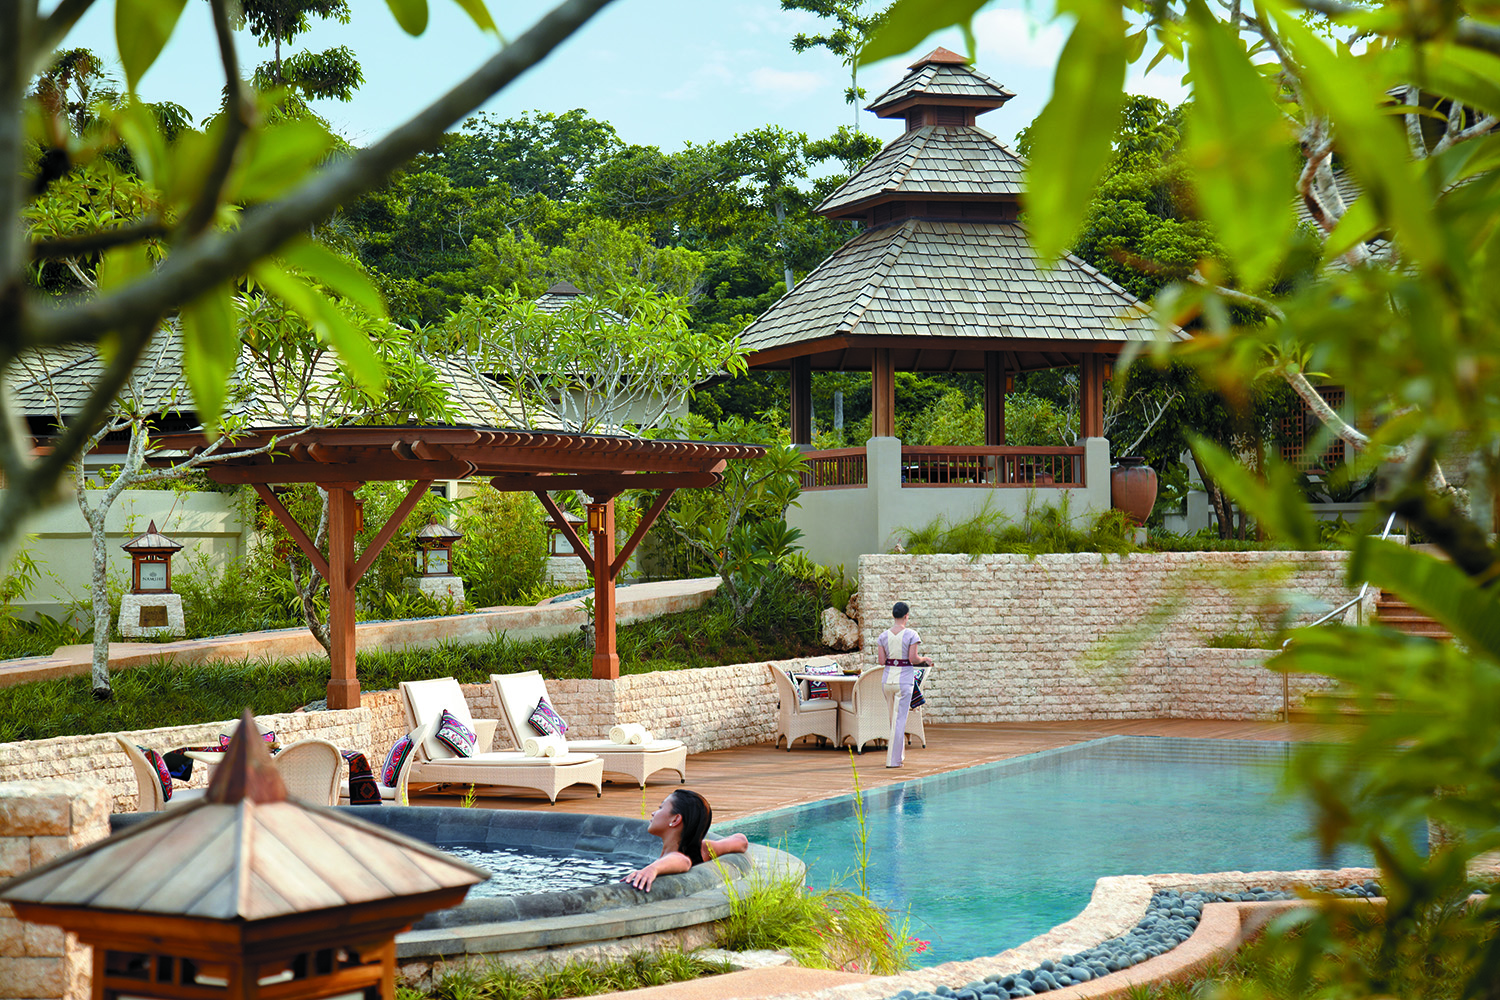 The spa's outdoor Jacuzzi and pool area.